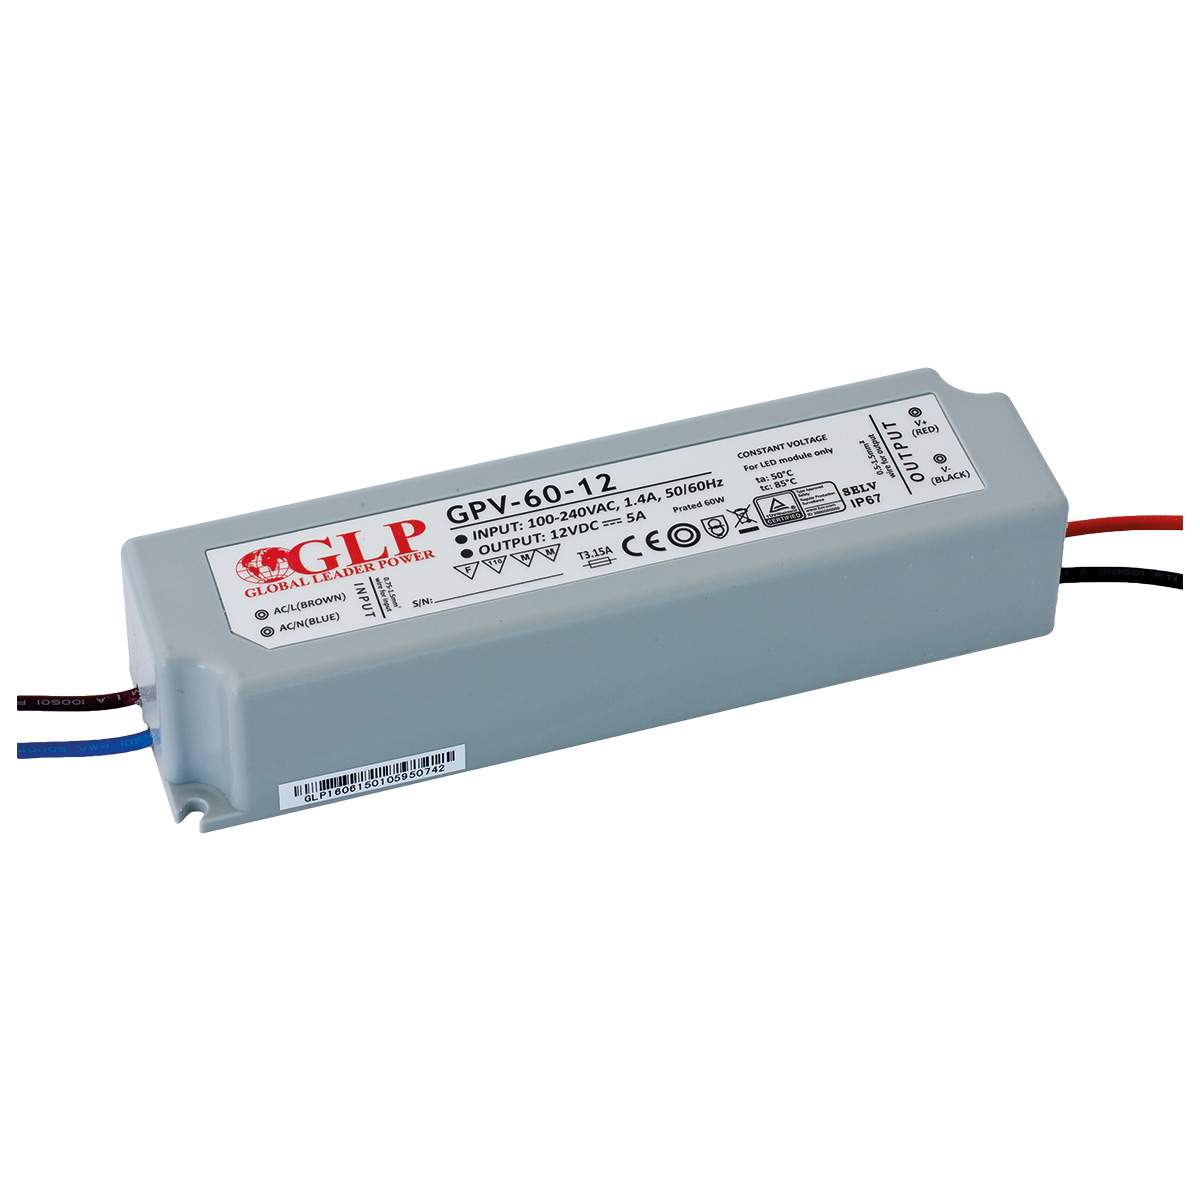 LED Toiteplokk GLP POWER 12V DC GPV-60-12  60W  IP67